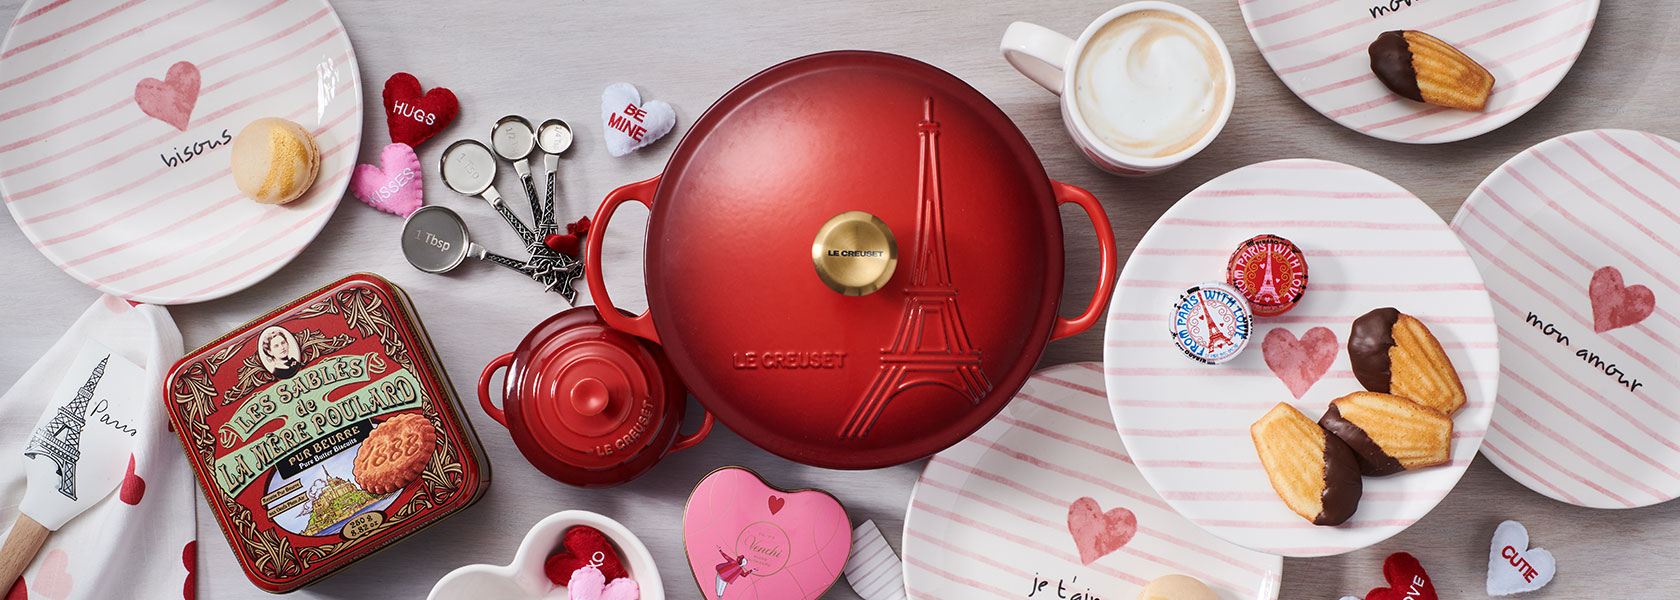 Red Le Creuset cast iron cookware